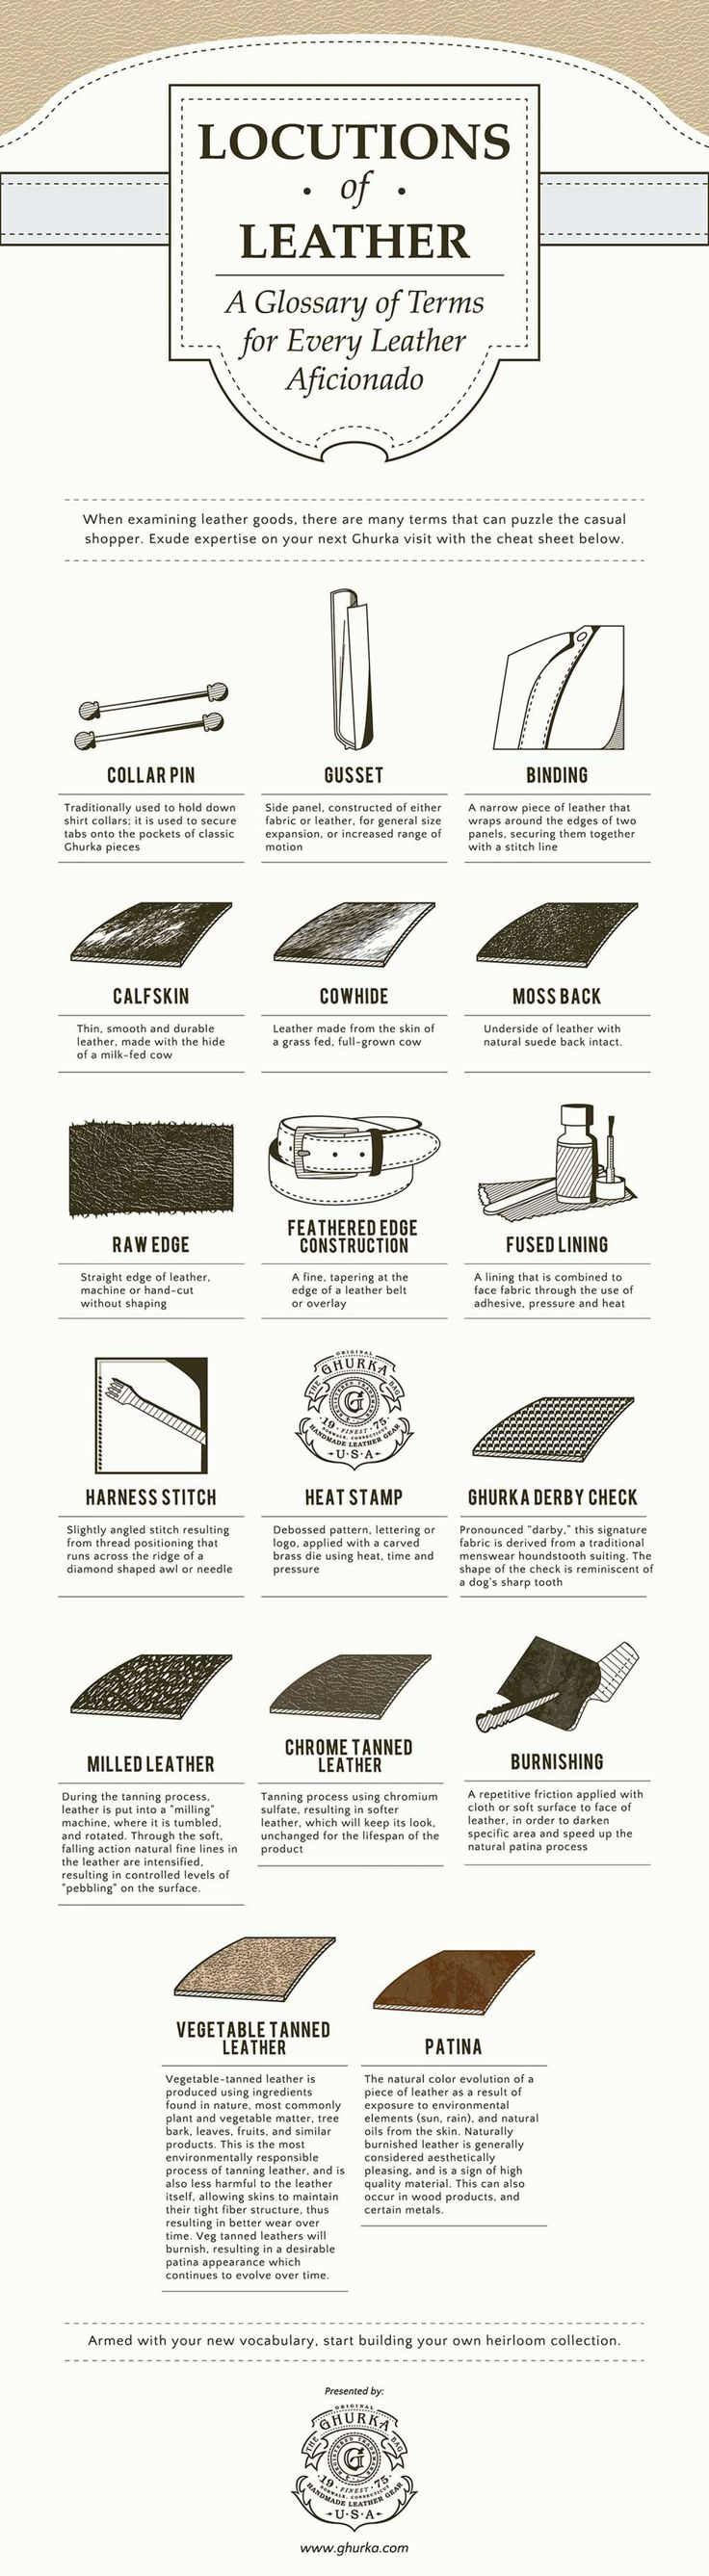 LOCUTIONS OF LEATHER Infographic #millinery #judithm #leather One can never stop learning.